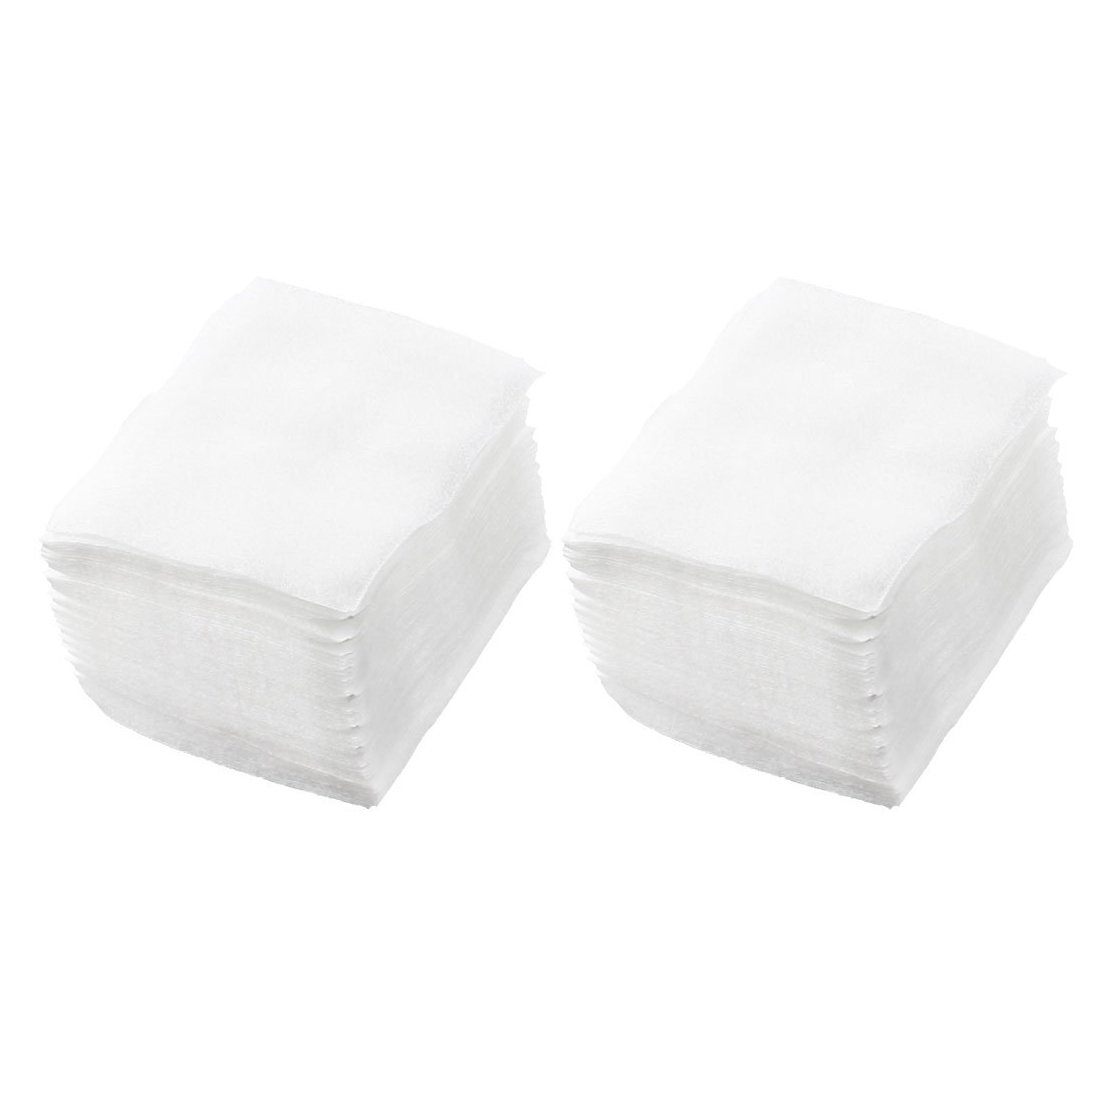 SODIAL(R) 320pcs Lady White Nail Polish Remover Rectangular Face Cleaning Cotton Pads